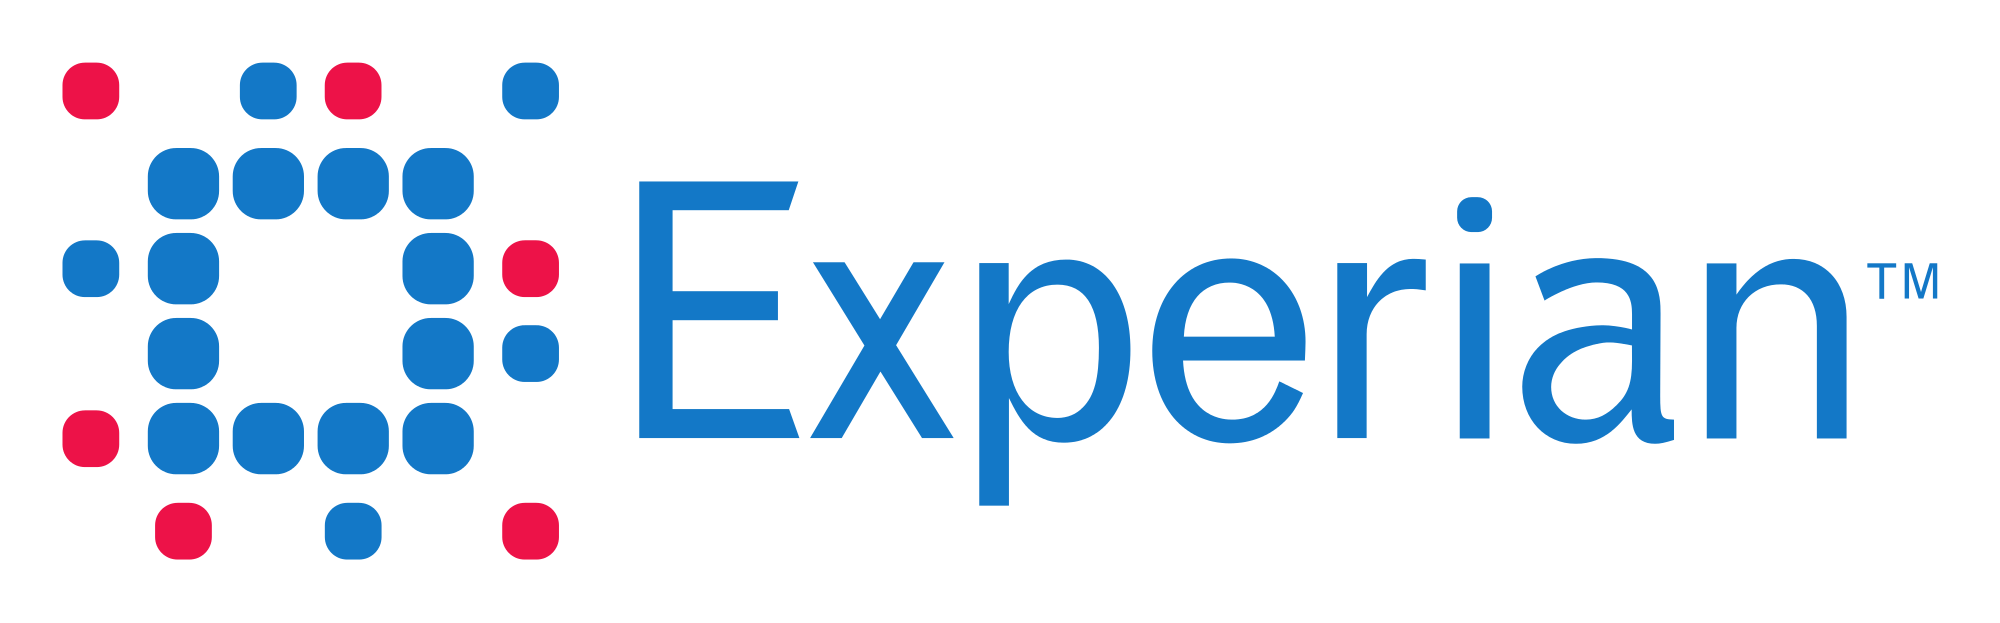 Experian-logo-san-diego-ama-art-of-marketing-conference-2015